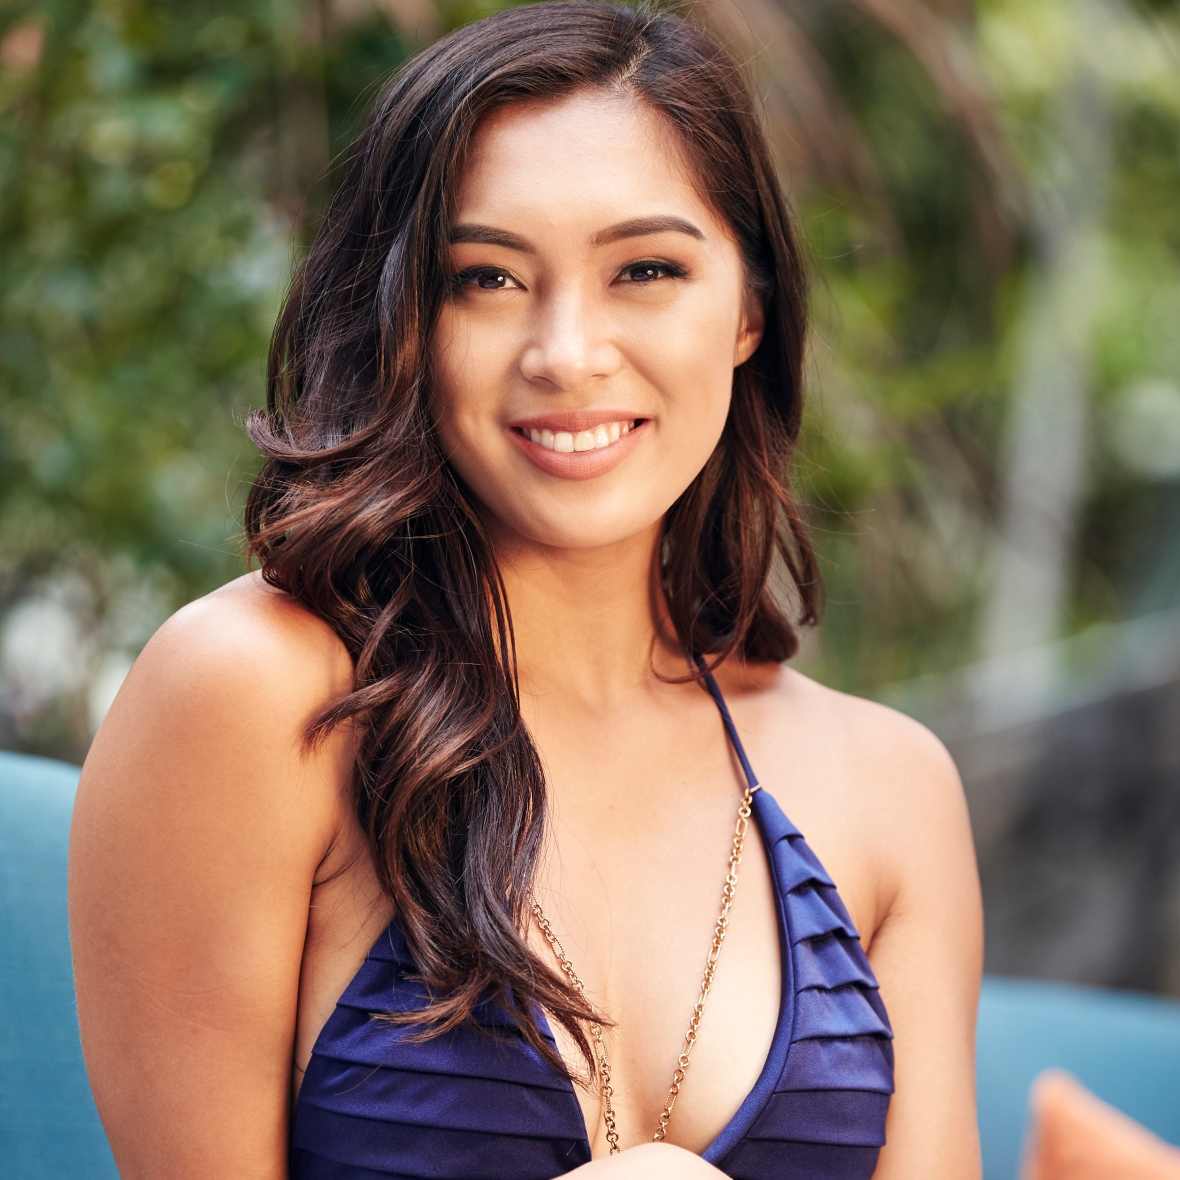 kayla umagat from are you the one season 7